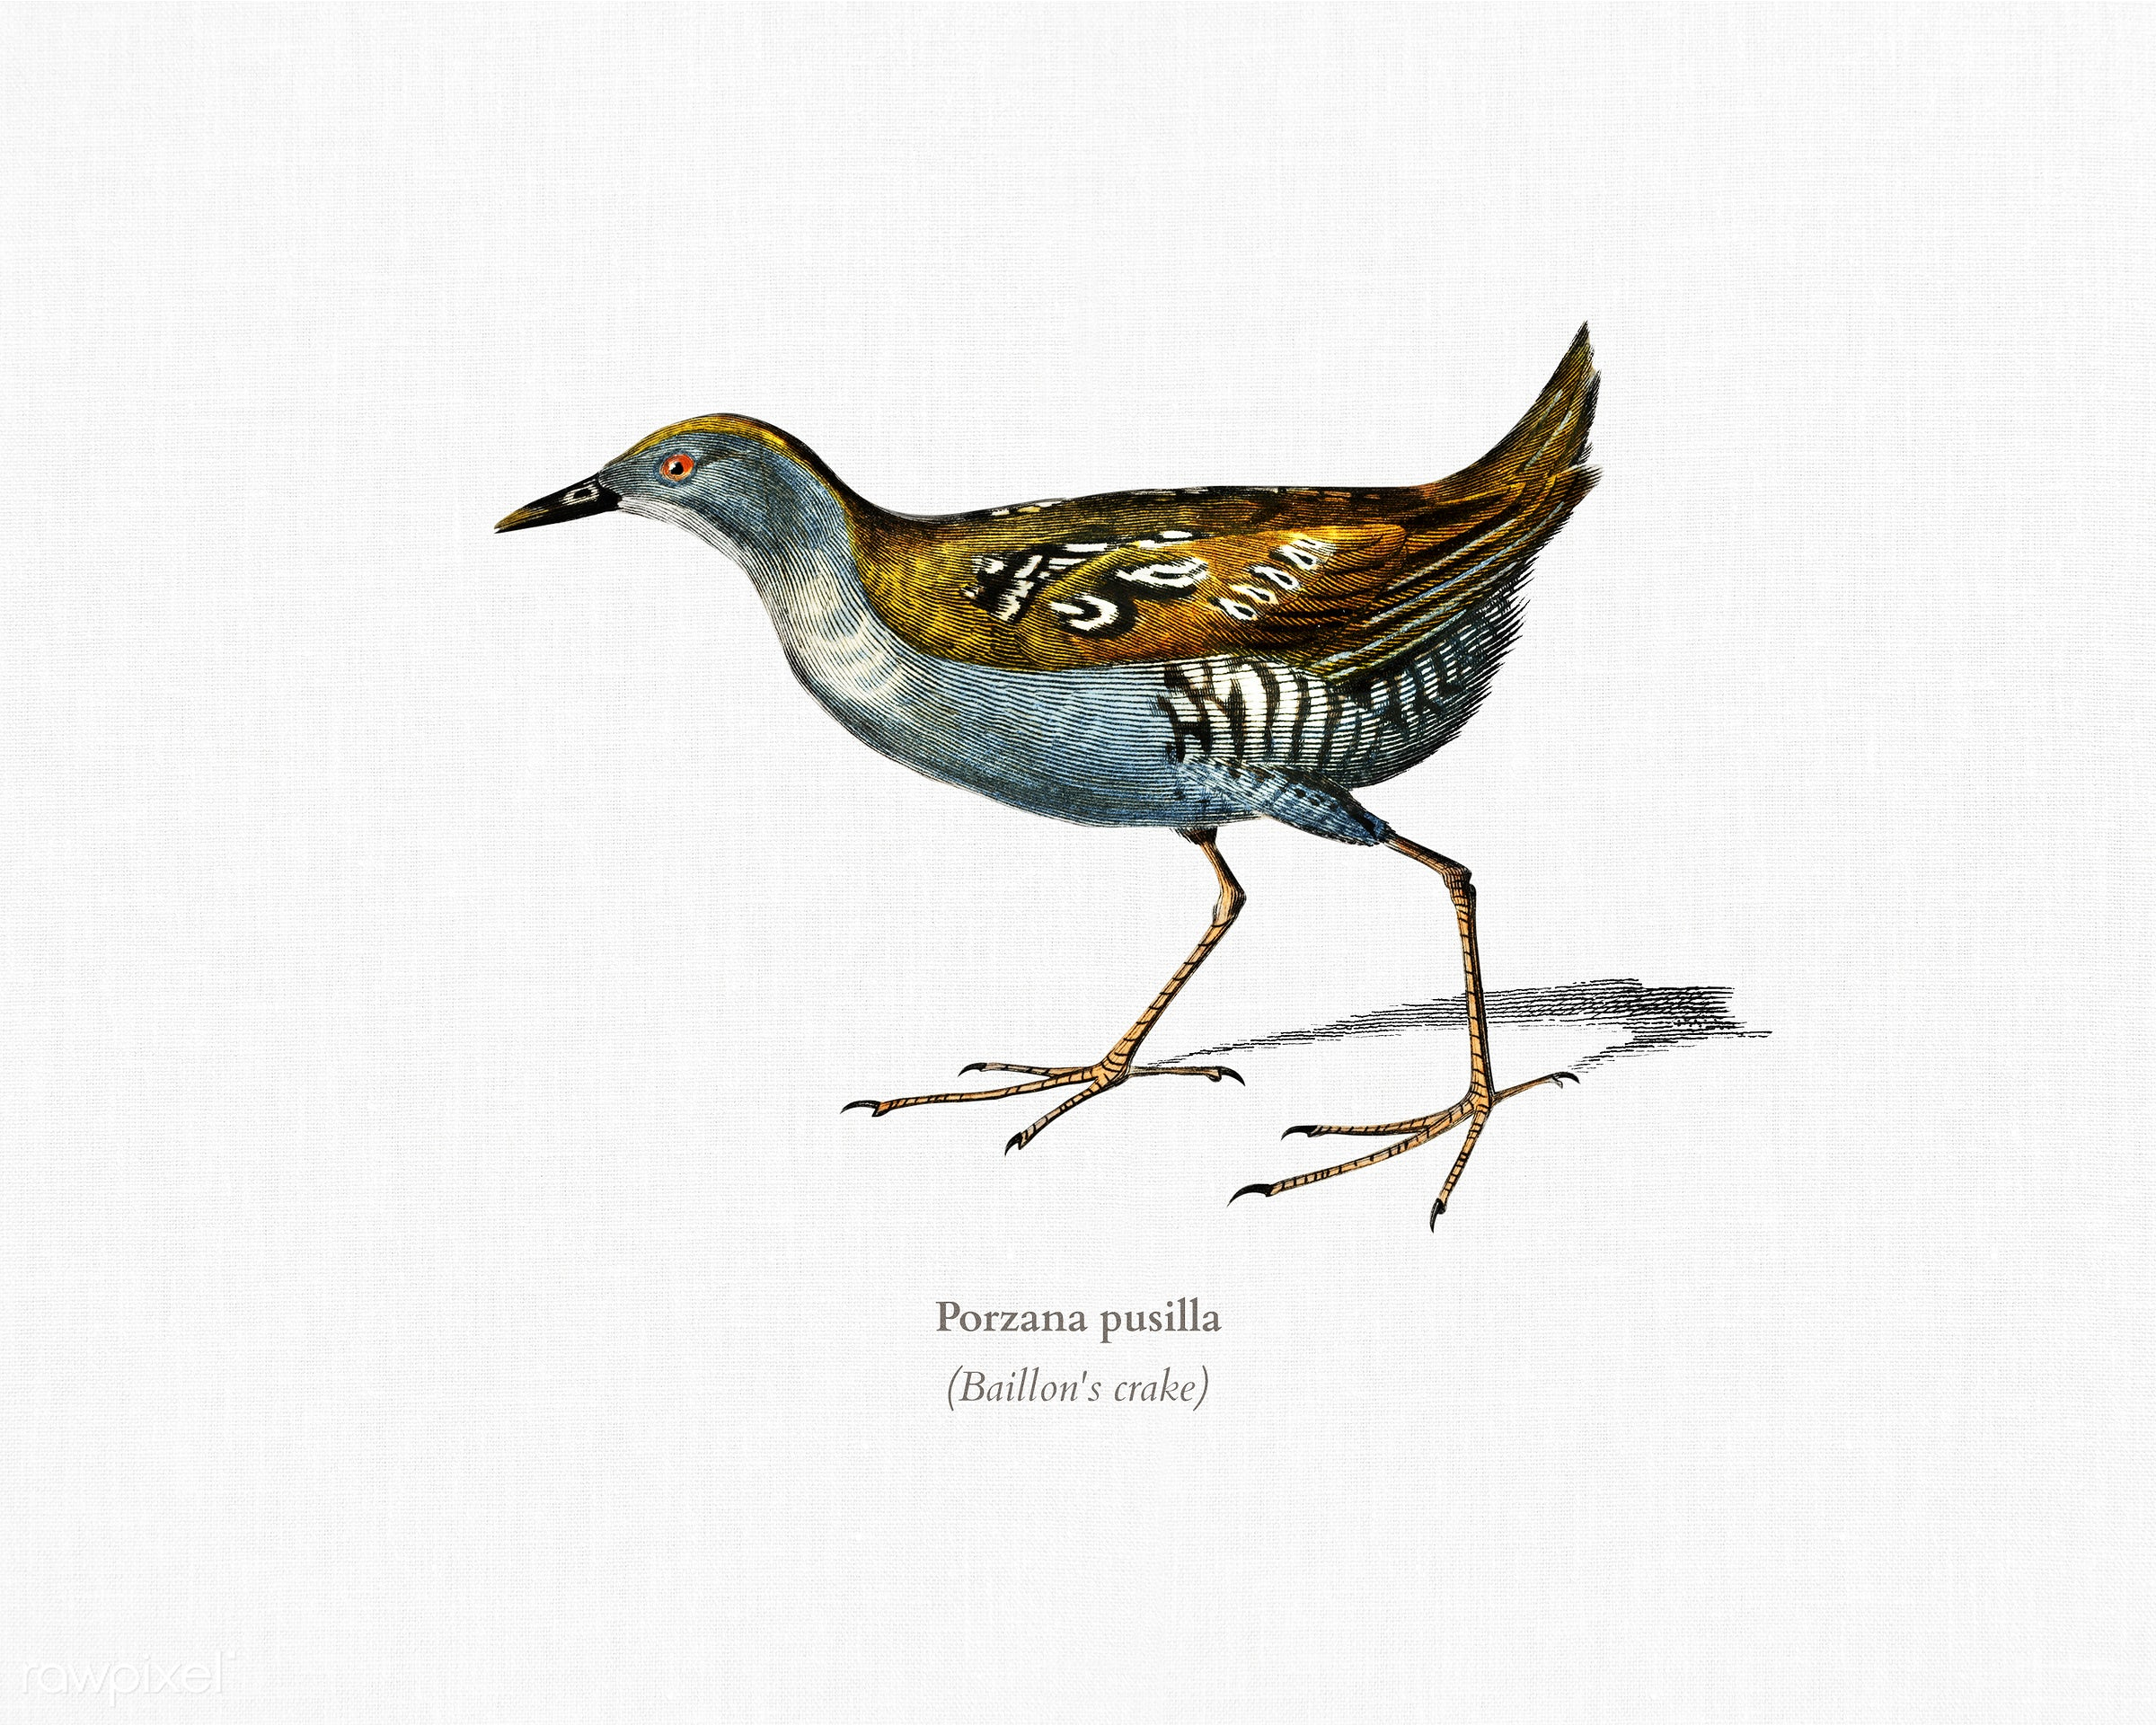 Baillon's crake (Porzana pusilla) illustrated by Charles Dessalines D' Orbigny (1806-1876). Digitally enhanced from...